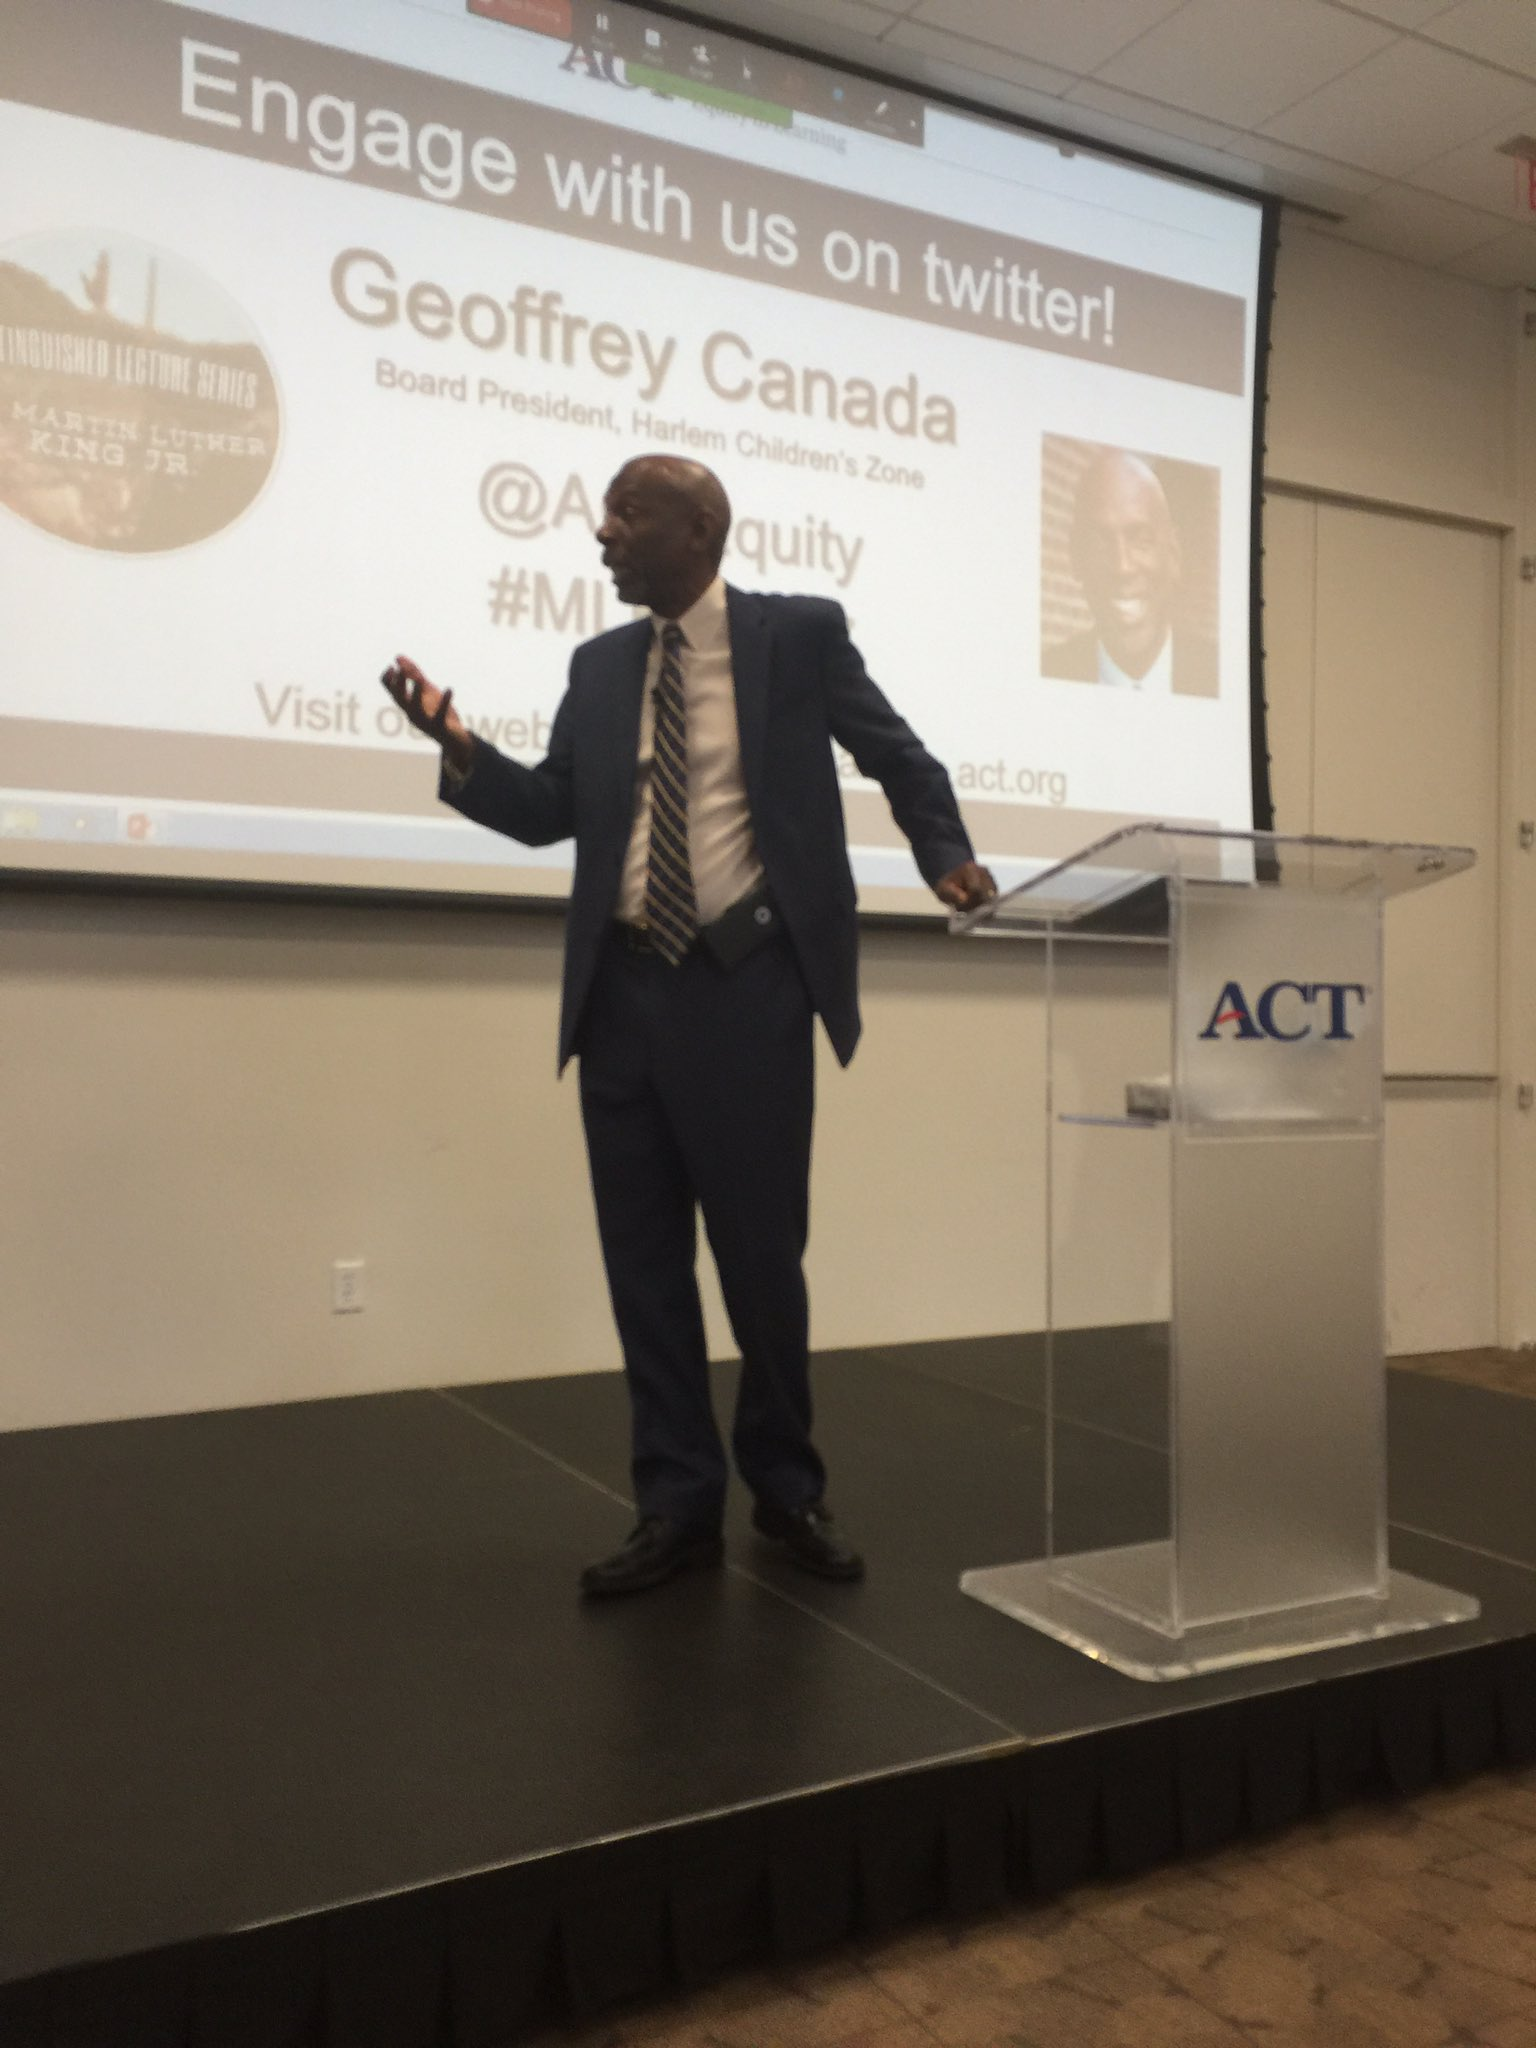 Geoff Canada gives big shout out to @RelayGSE for teaching teachers how to control and manage classrooms #MLKDay2017 @ACTEquity https://t.co/DTQqUReIYk